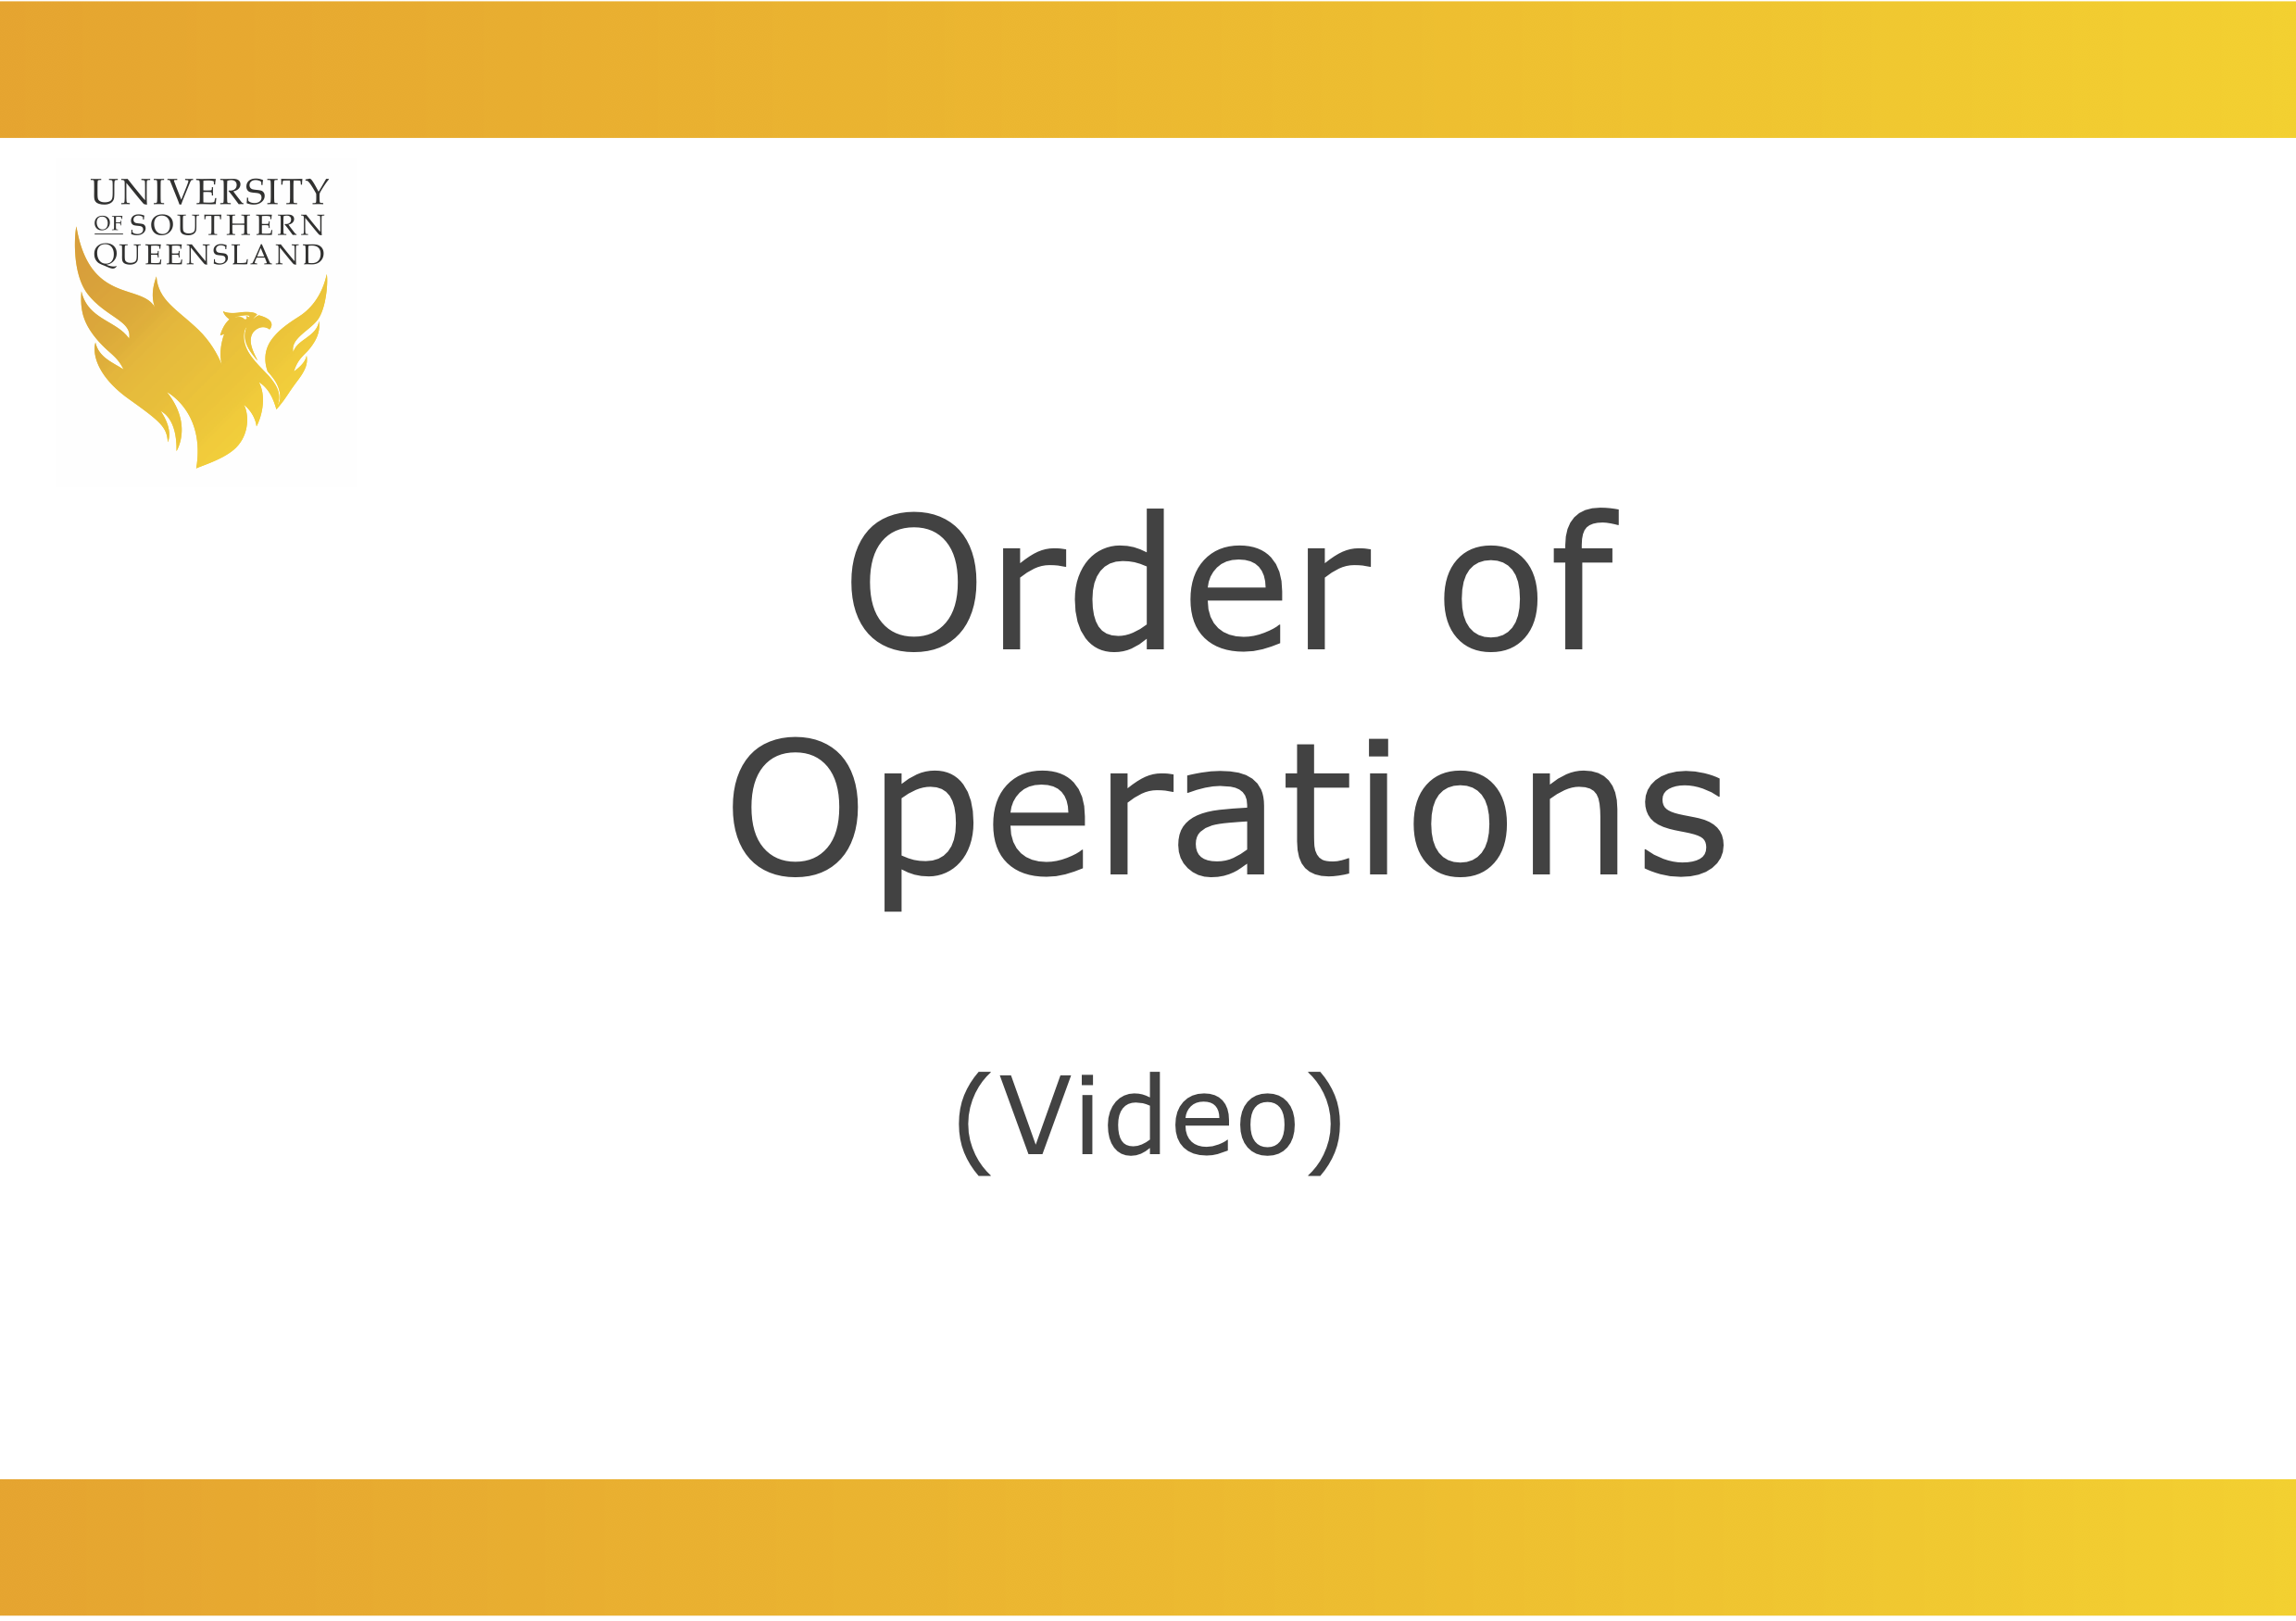 Image to click on to play the Order of Operations video.